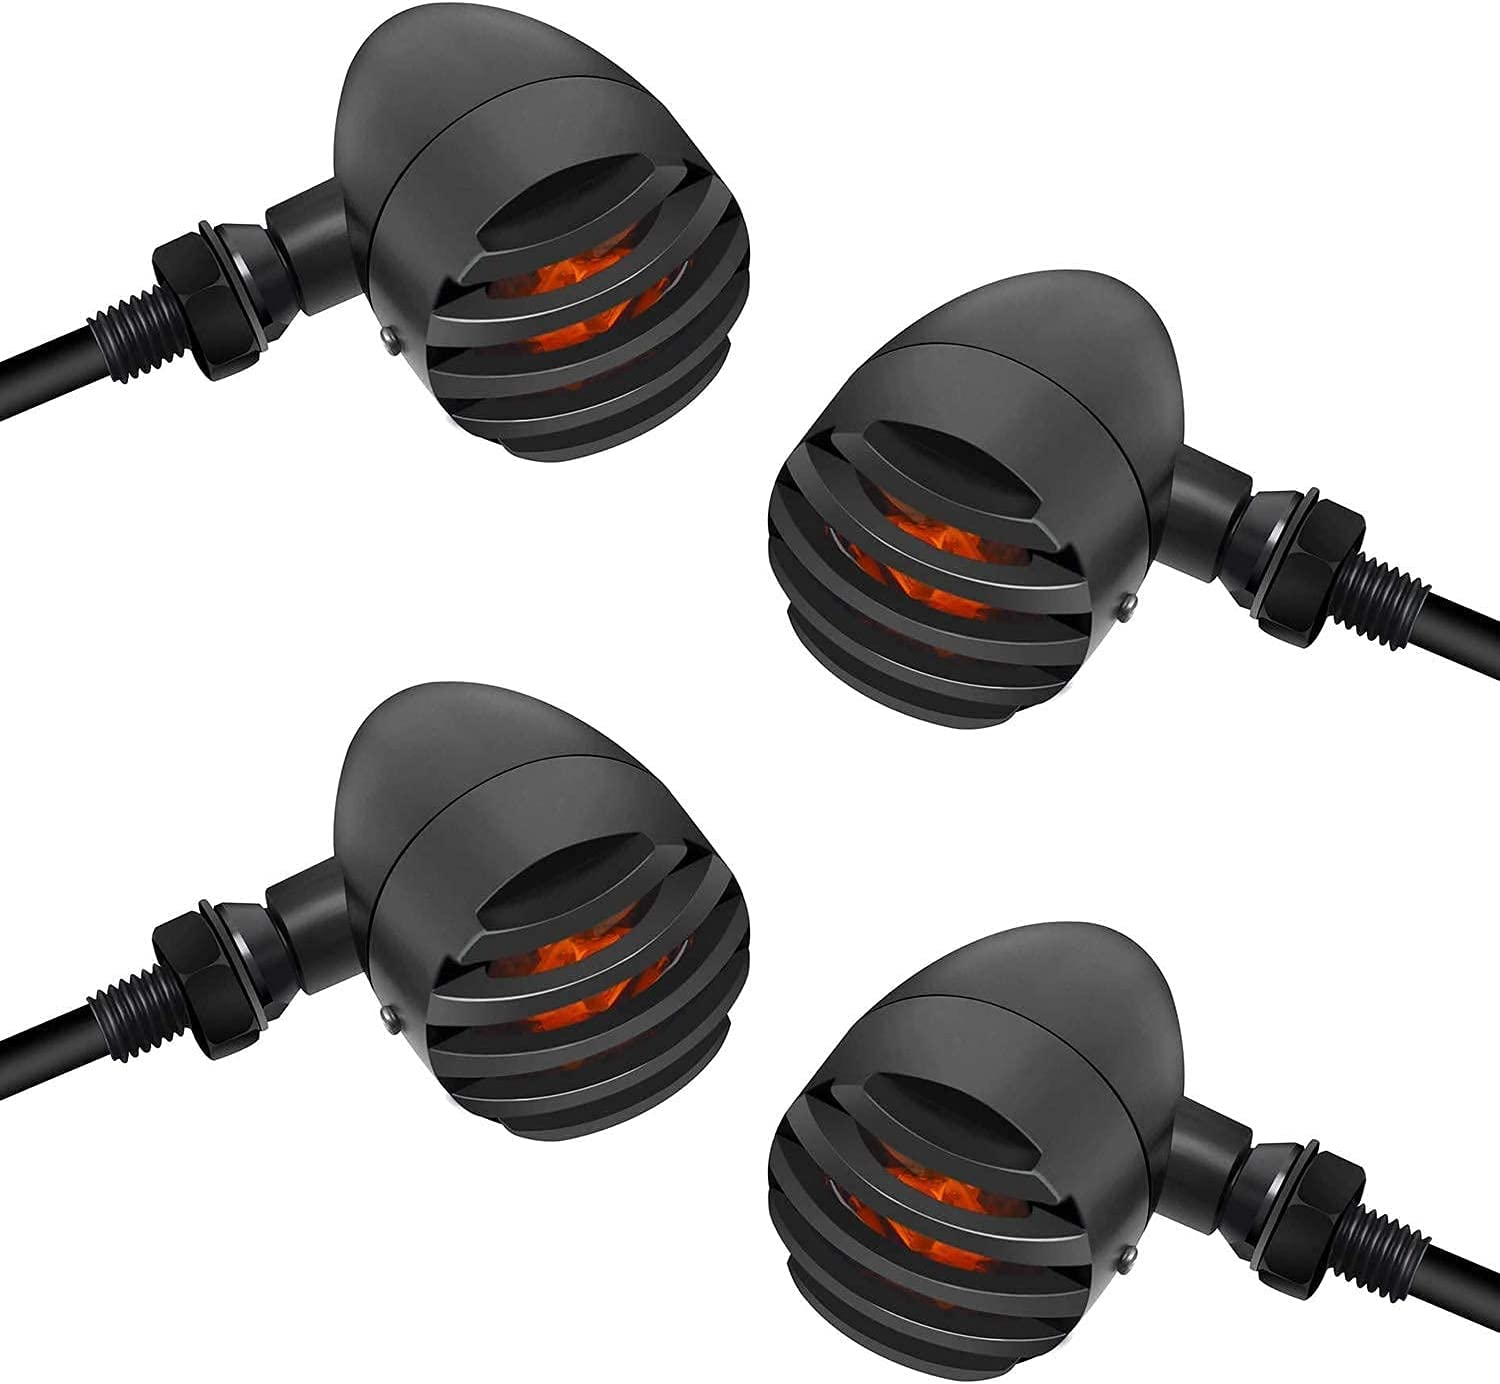 NTHREEAUTO Max 82% OFF Motorcycle Blinkers Surprise price Bullet Univers Signals LED Turn